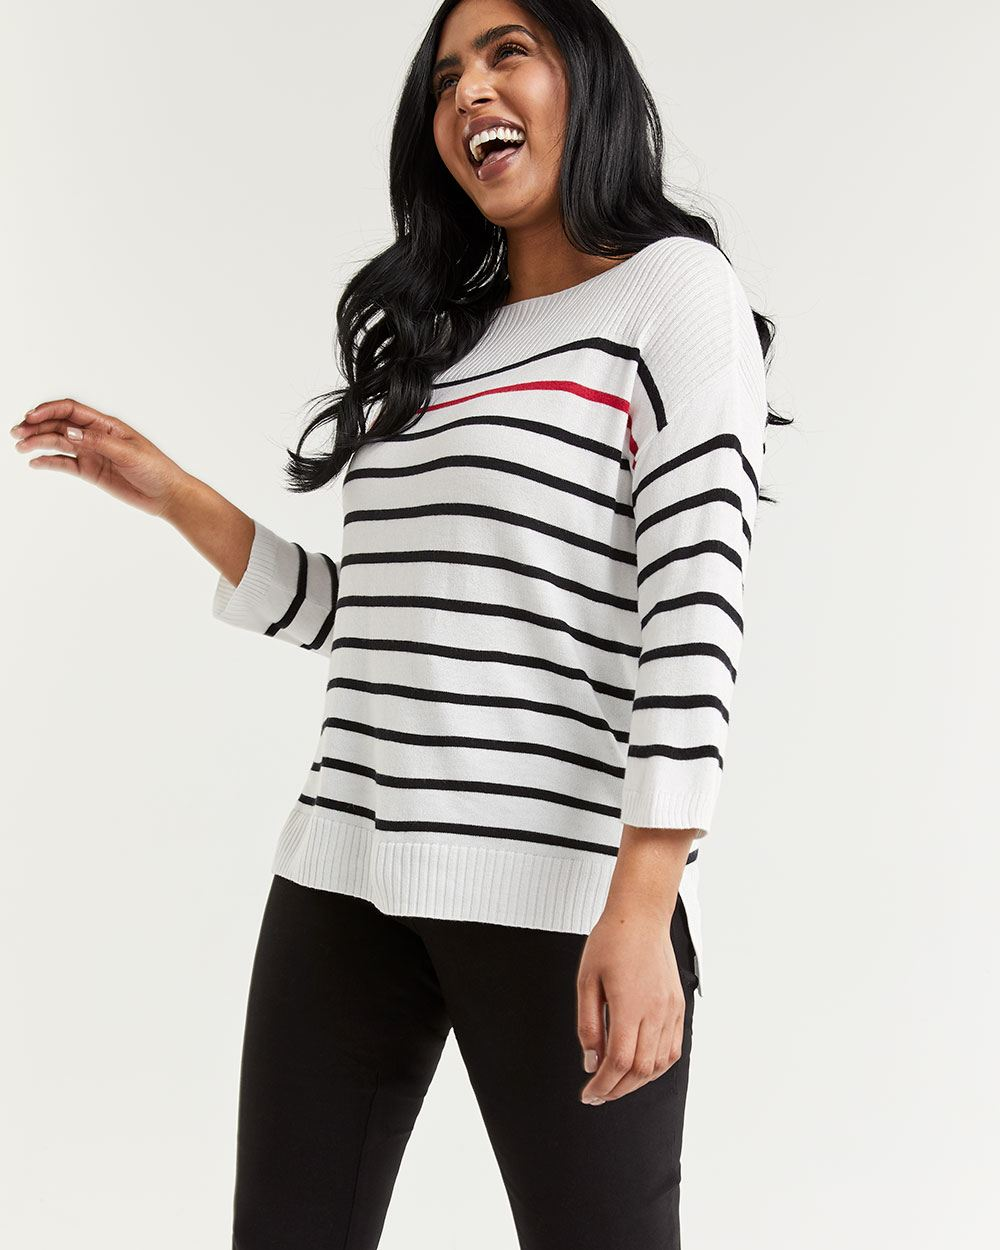 Striped Boat Neck Sweater with Rib Stitch Details